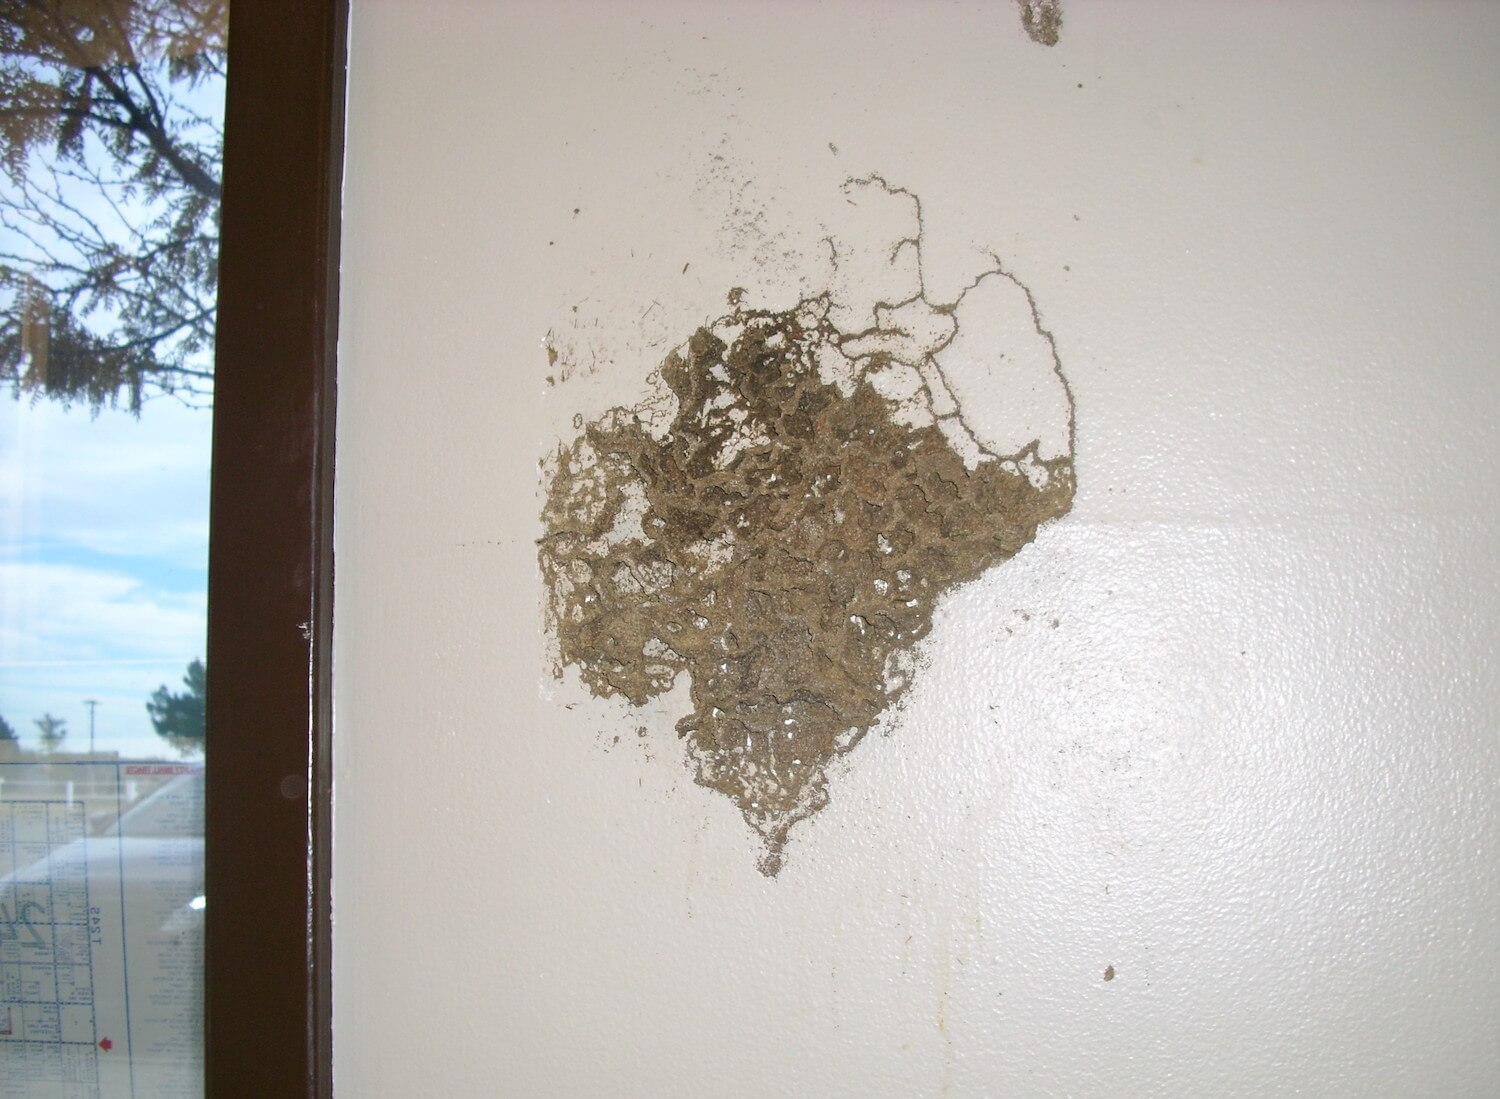 Termites Tunnel on the interior of a wall.